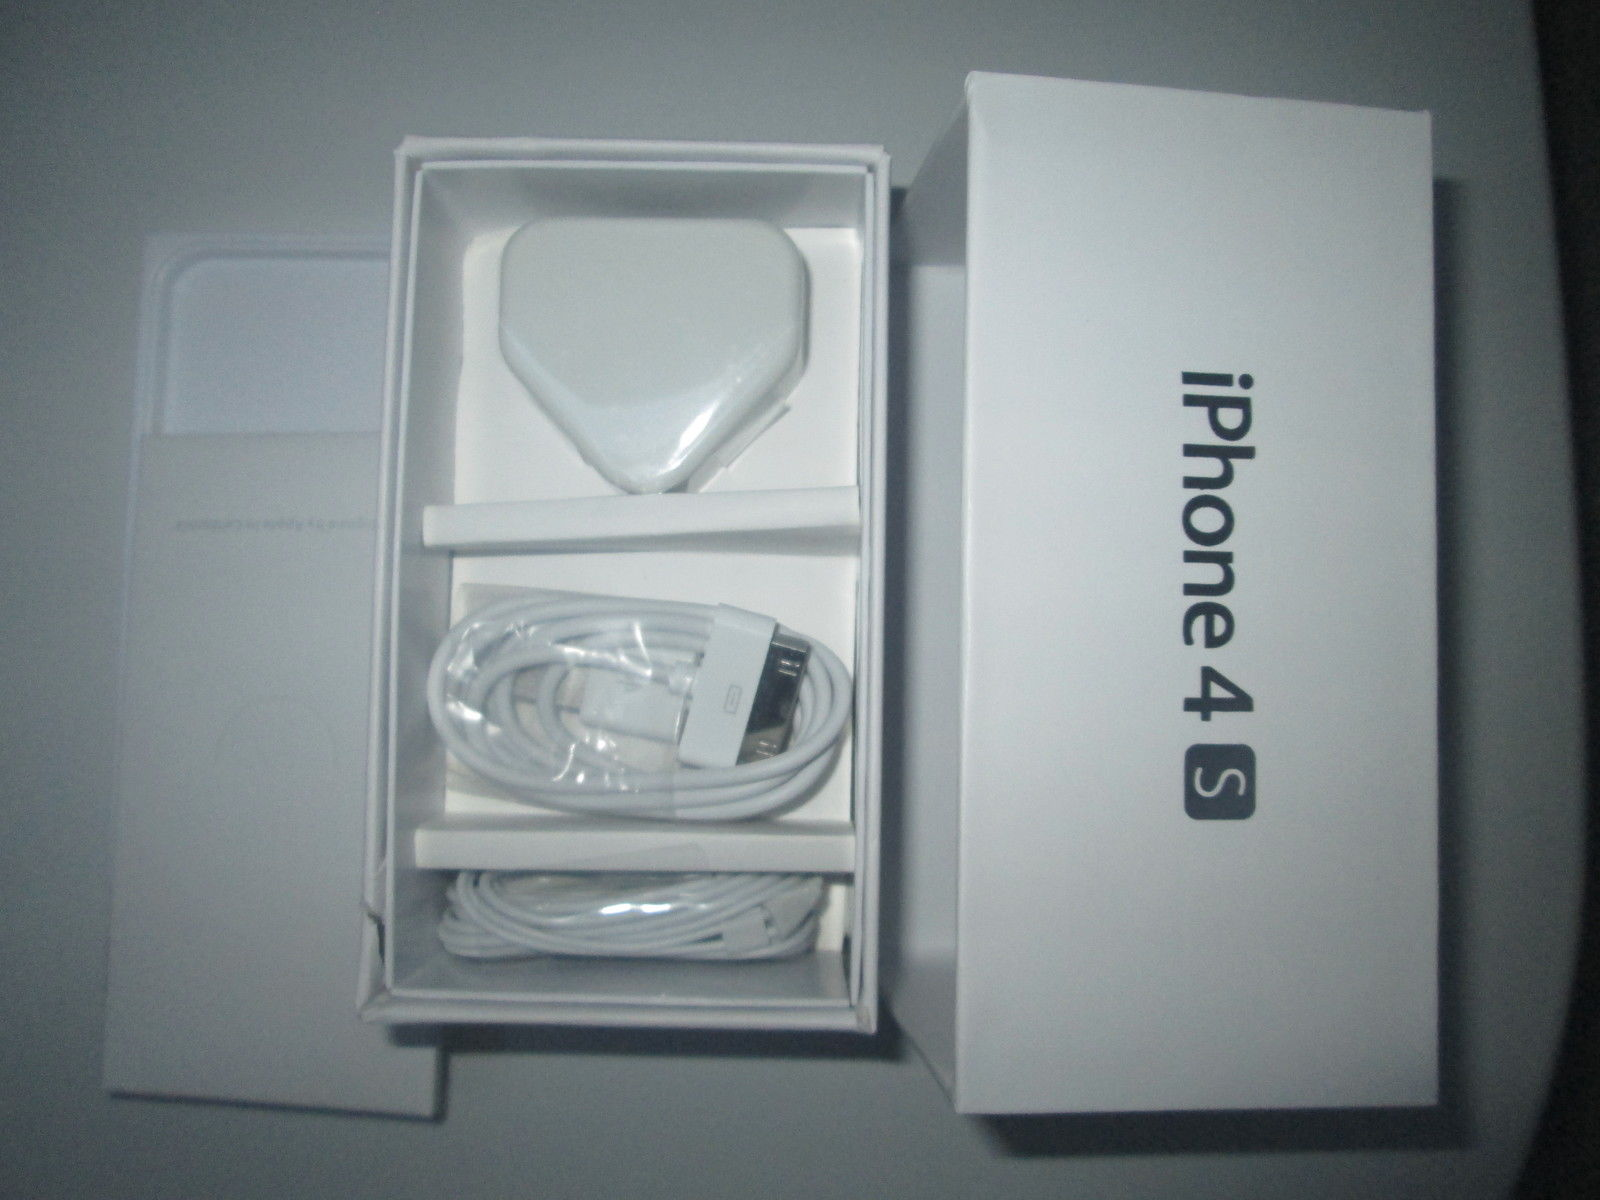 iPhone 4s Black Box